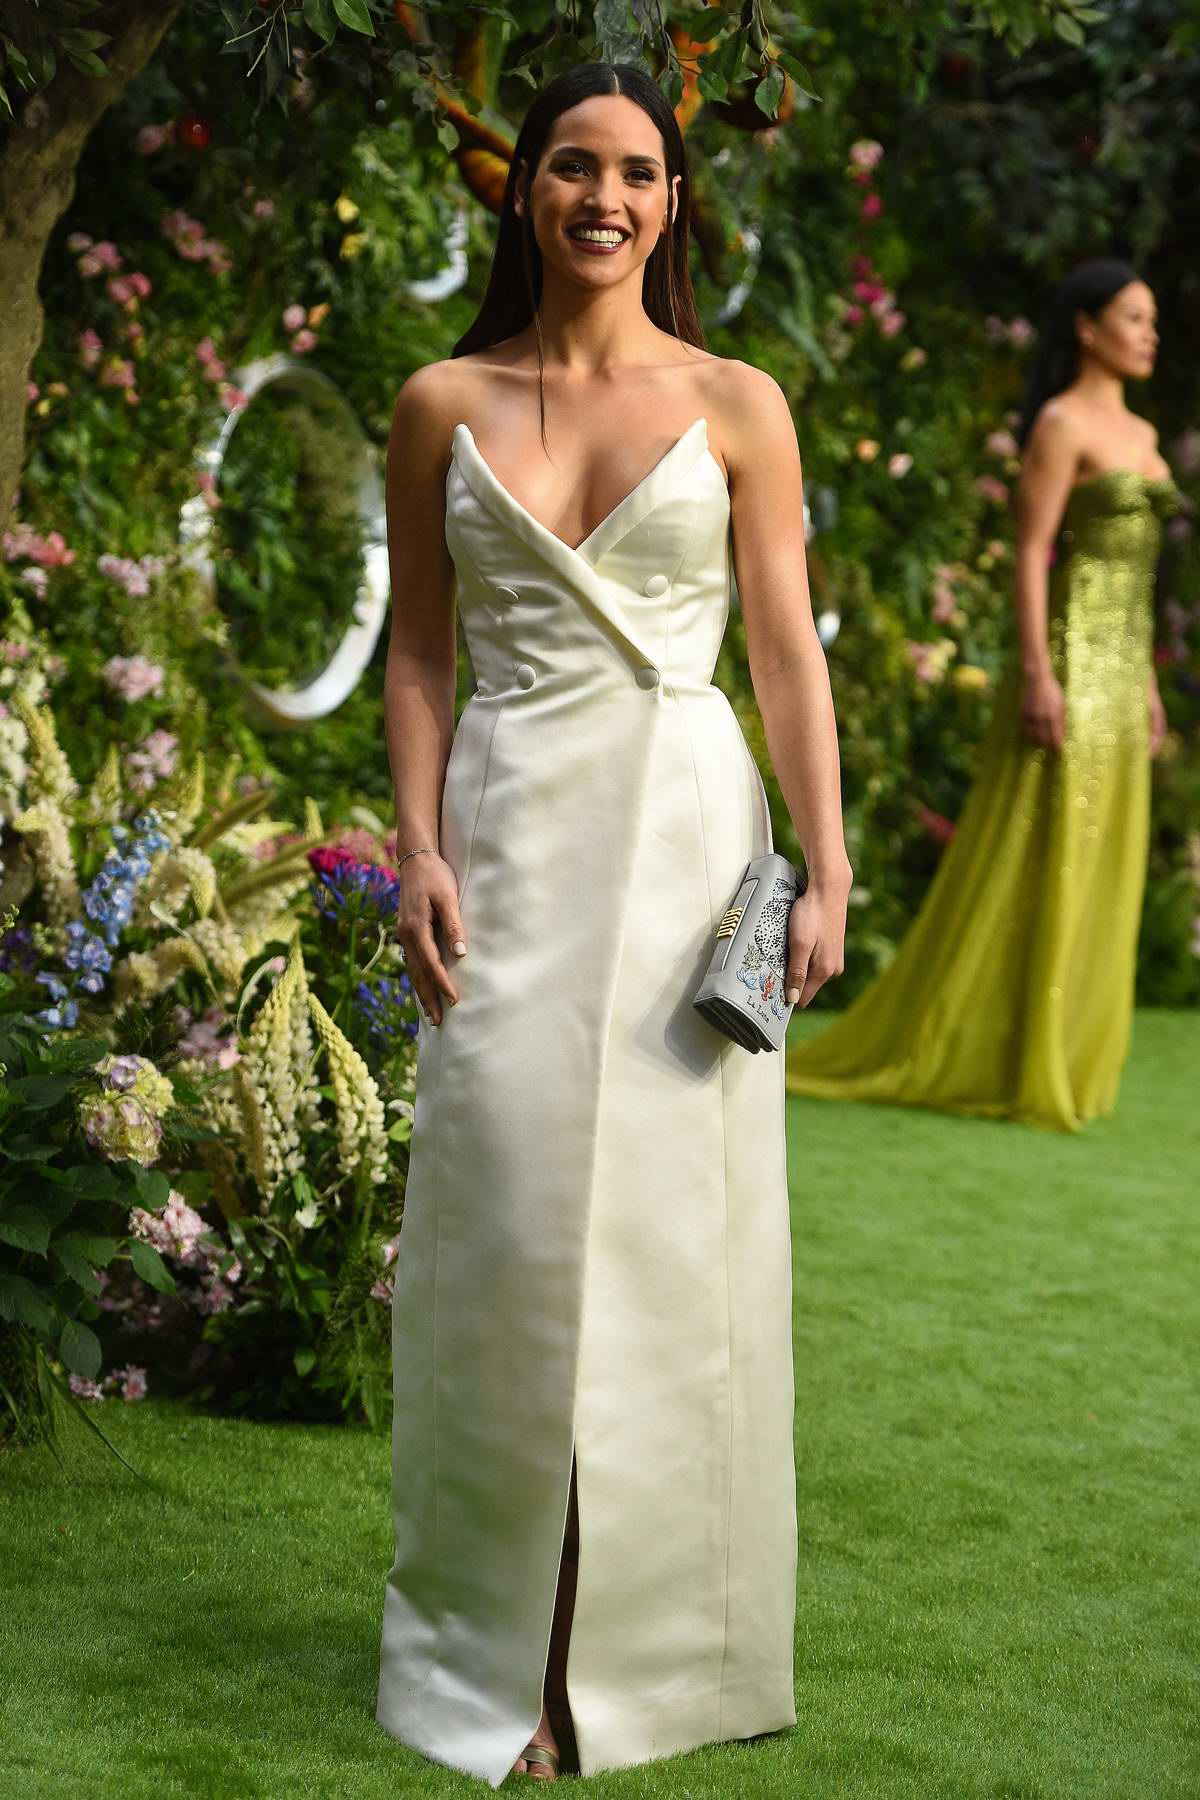 Adria Arjona attends the premiere of 'Good Omens' at the Odeon Luxe Leicester Square in London, UK